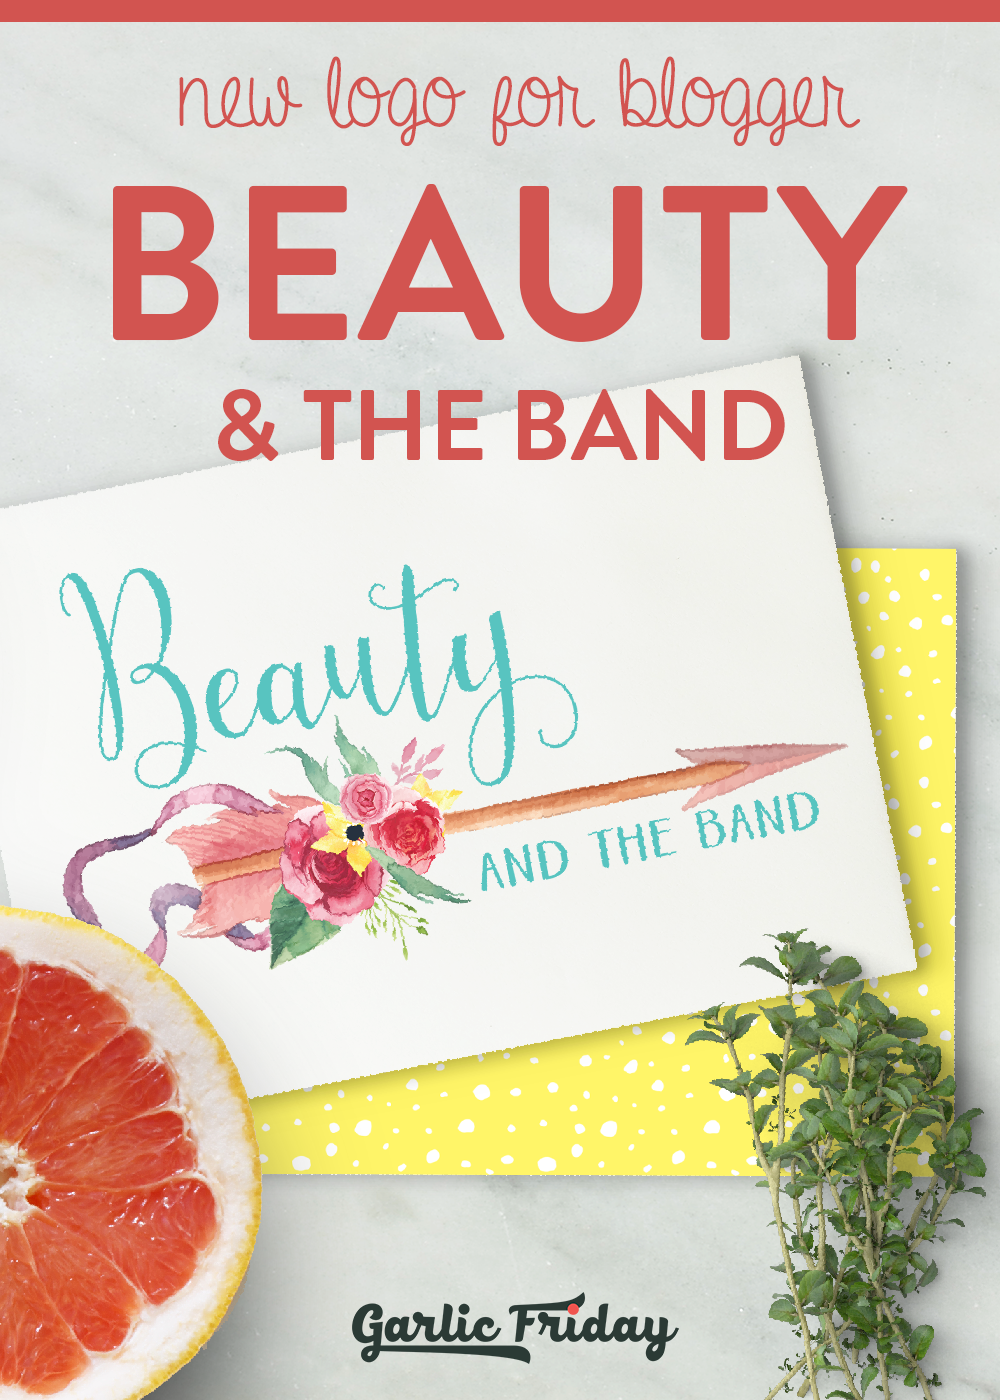 New logo for blogger Beauty & the Band by Garlic Friday Graphic Design